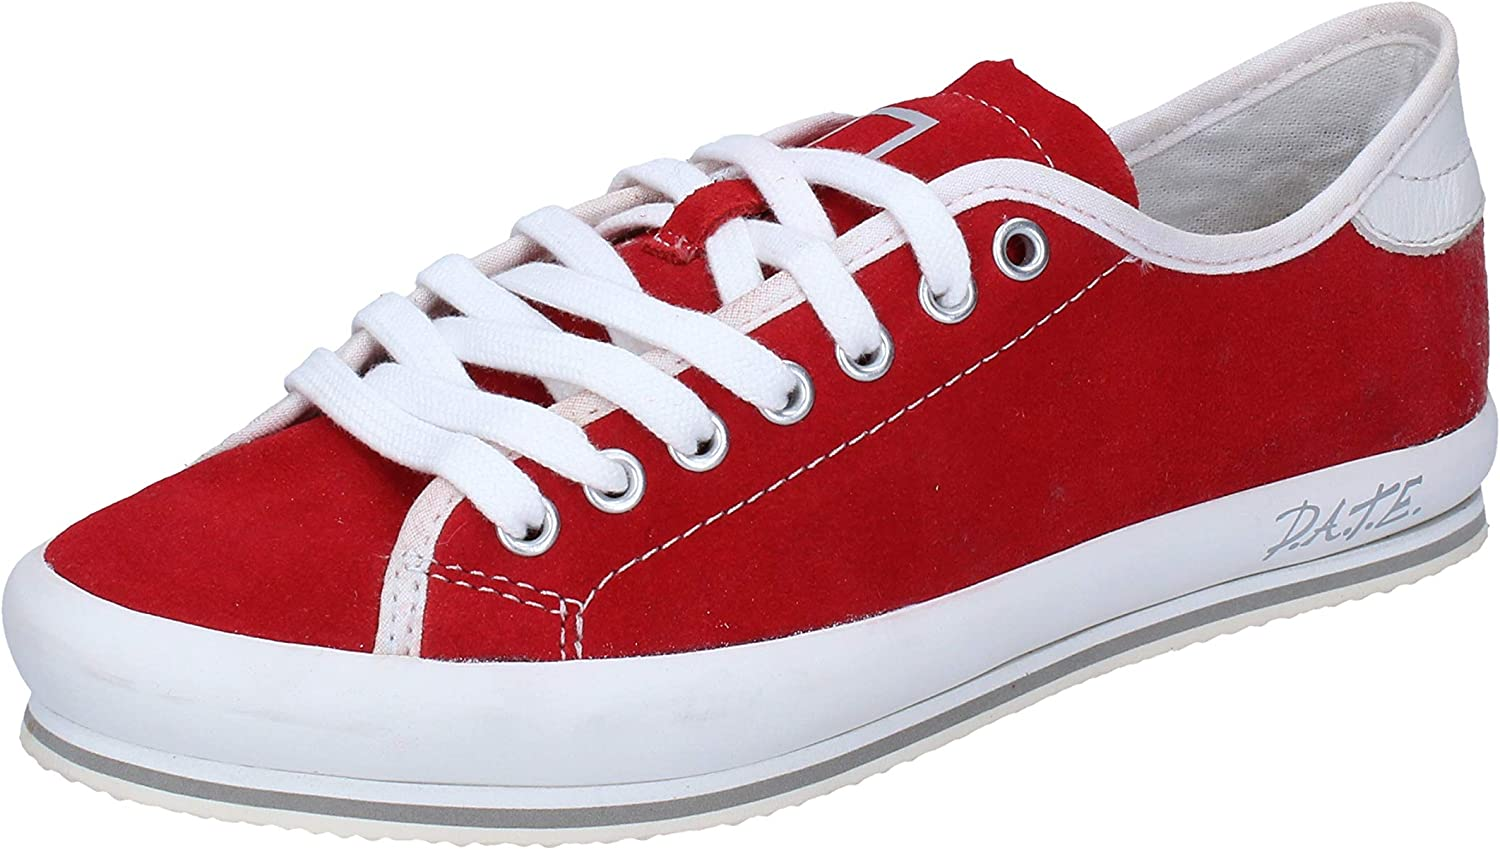 D.A.T.E. (DATE) Fashion-Sneakers Womens Suede Red